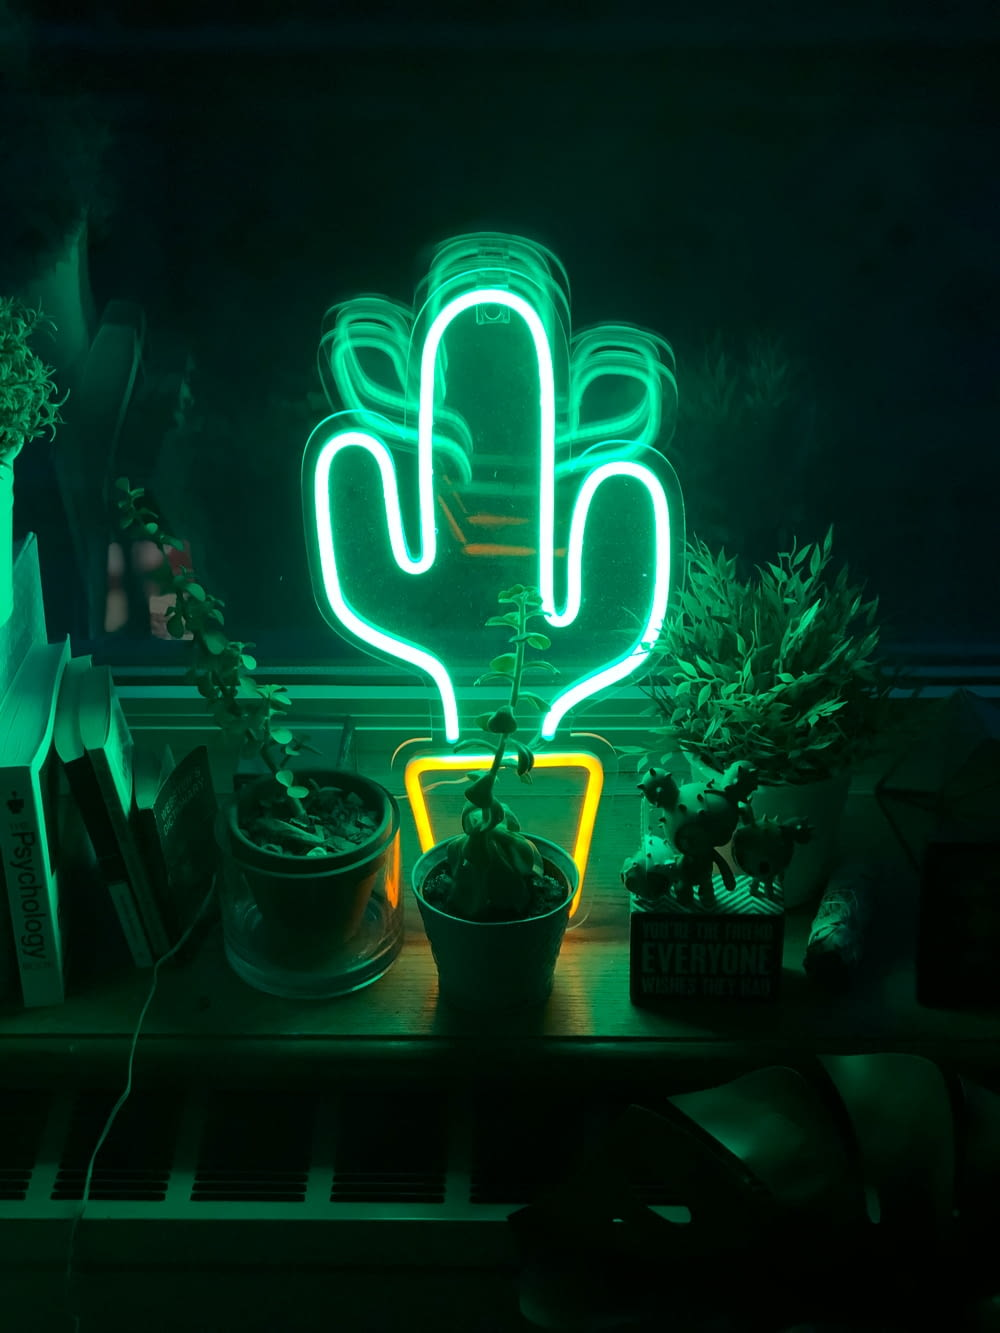 LED cactus neon light on table